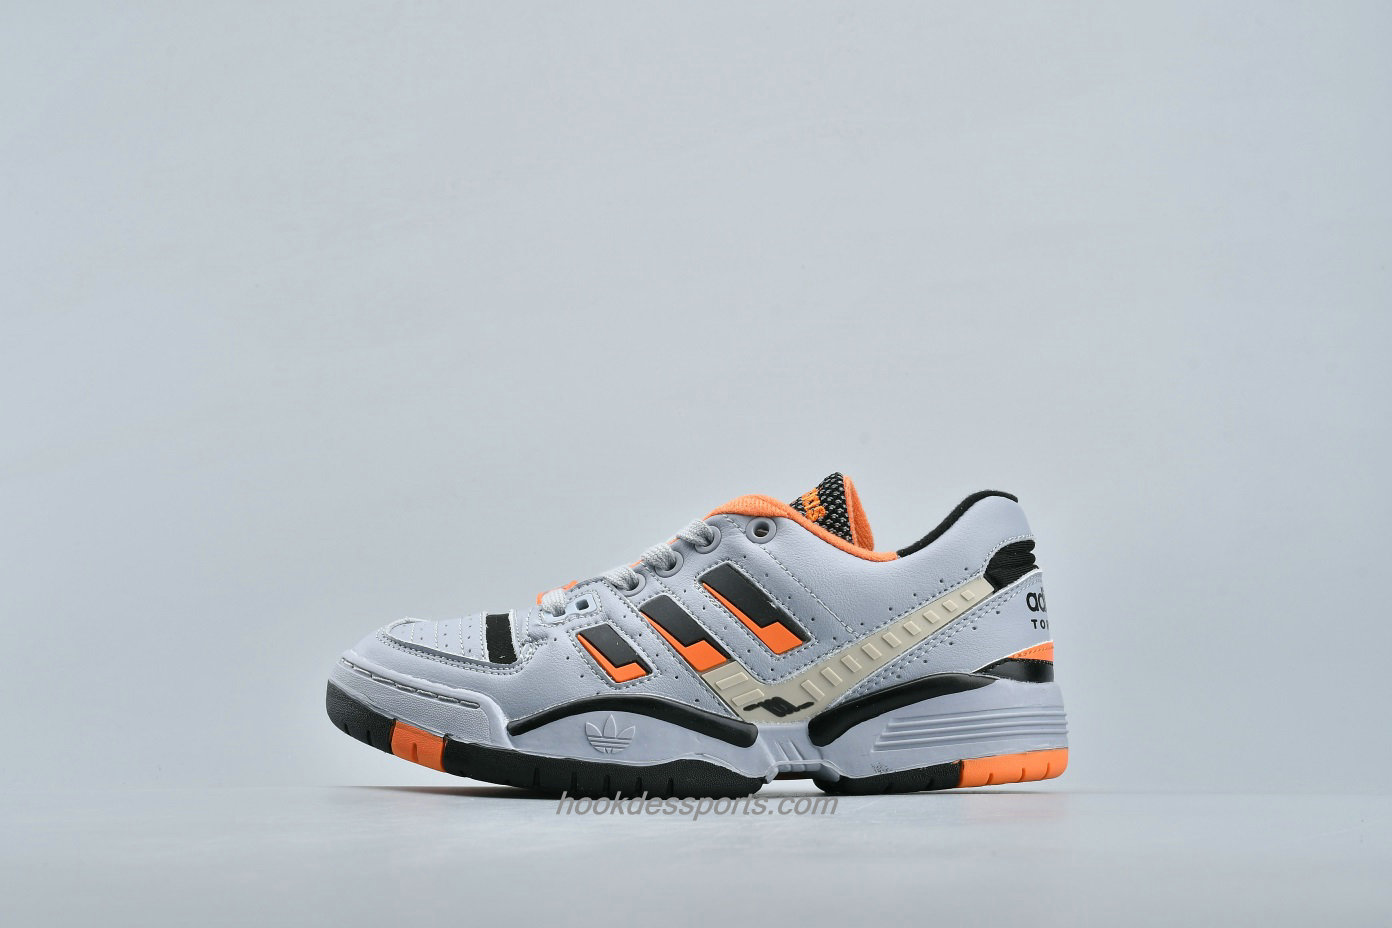 Chaussures Adidas Torsion Edberg Comp EF7751 Gris / Orange / Noir